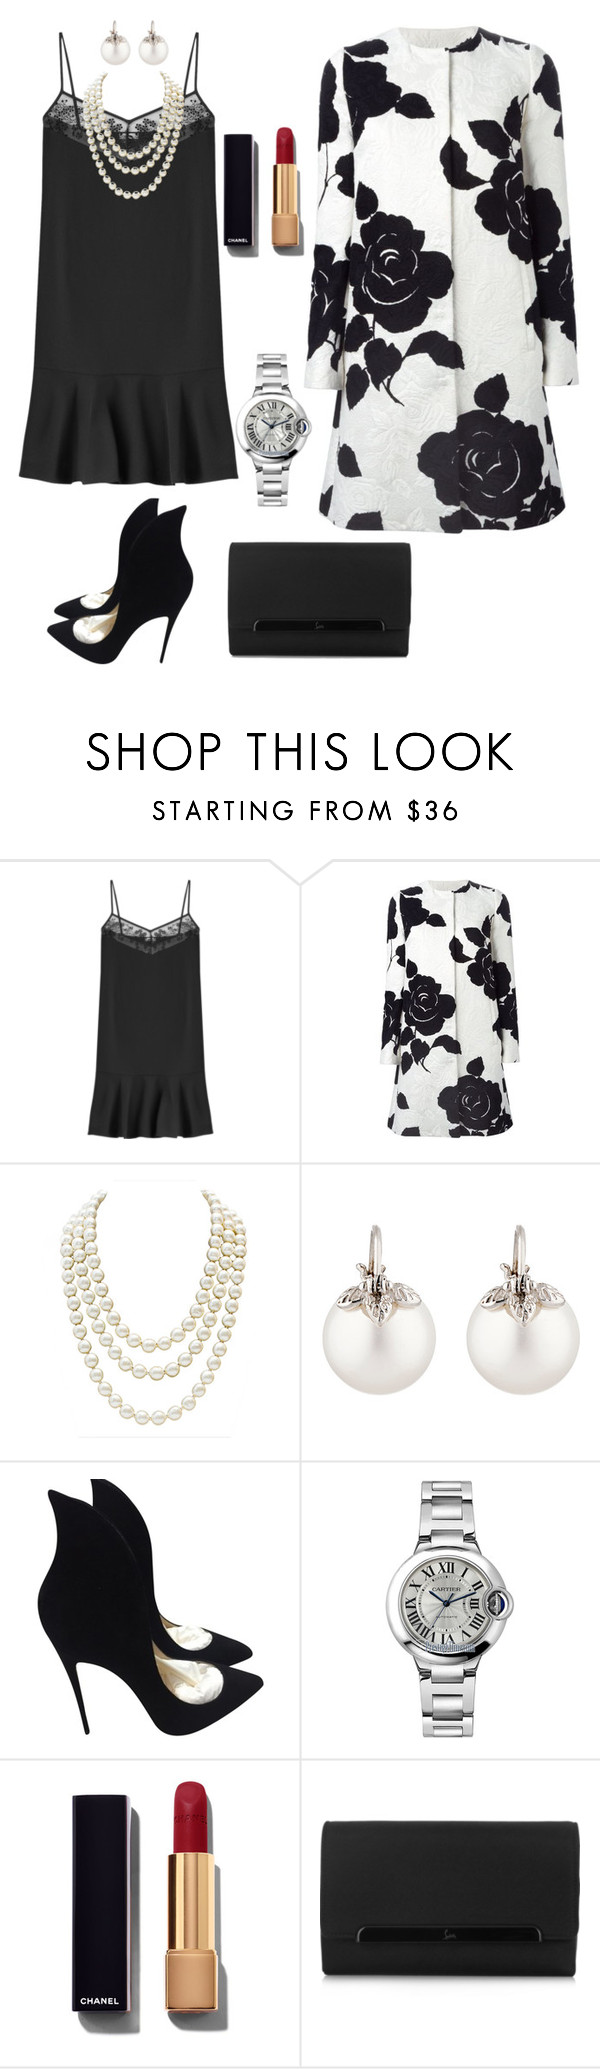 """Glamour!"" by jasive-asseff-jamous ❤ liked on Polyvore featuring Carven, Dolce&Gabbana, Chanel, Samira 13, Christian Louboutin, Cartier, women's clothing, women's fashion, women and female"